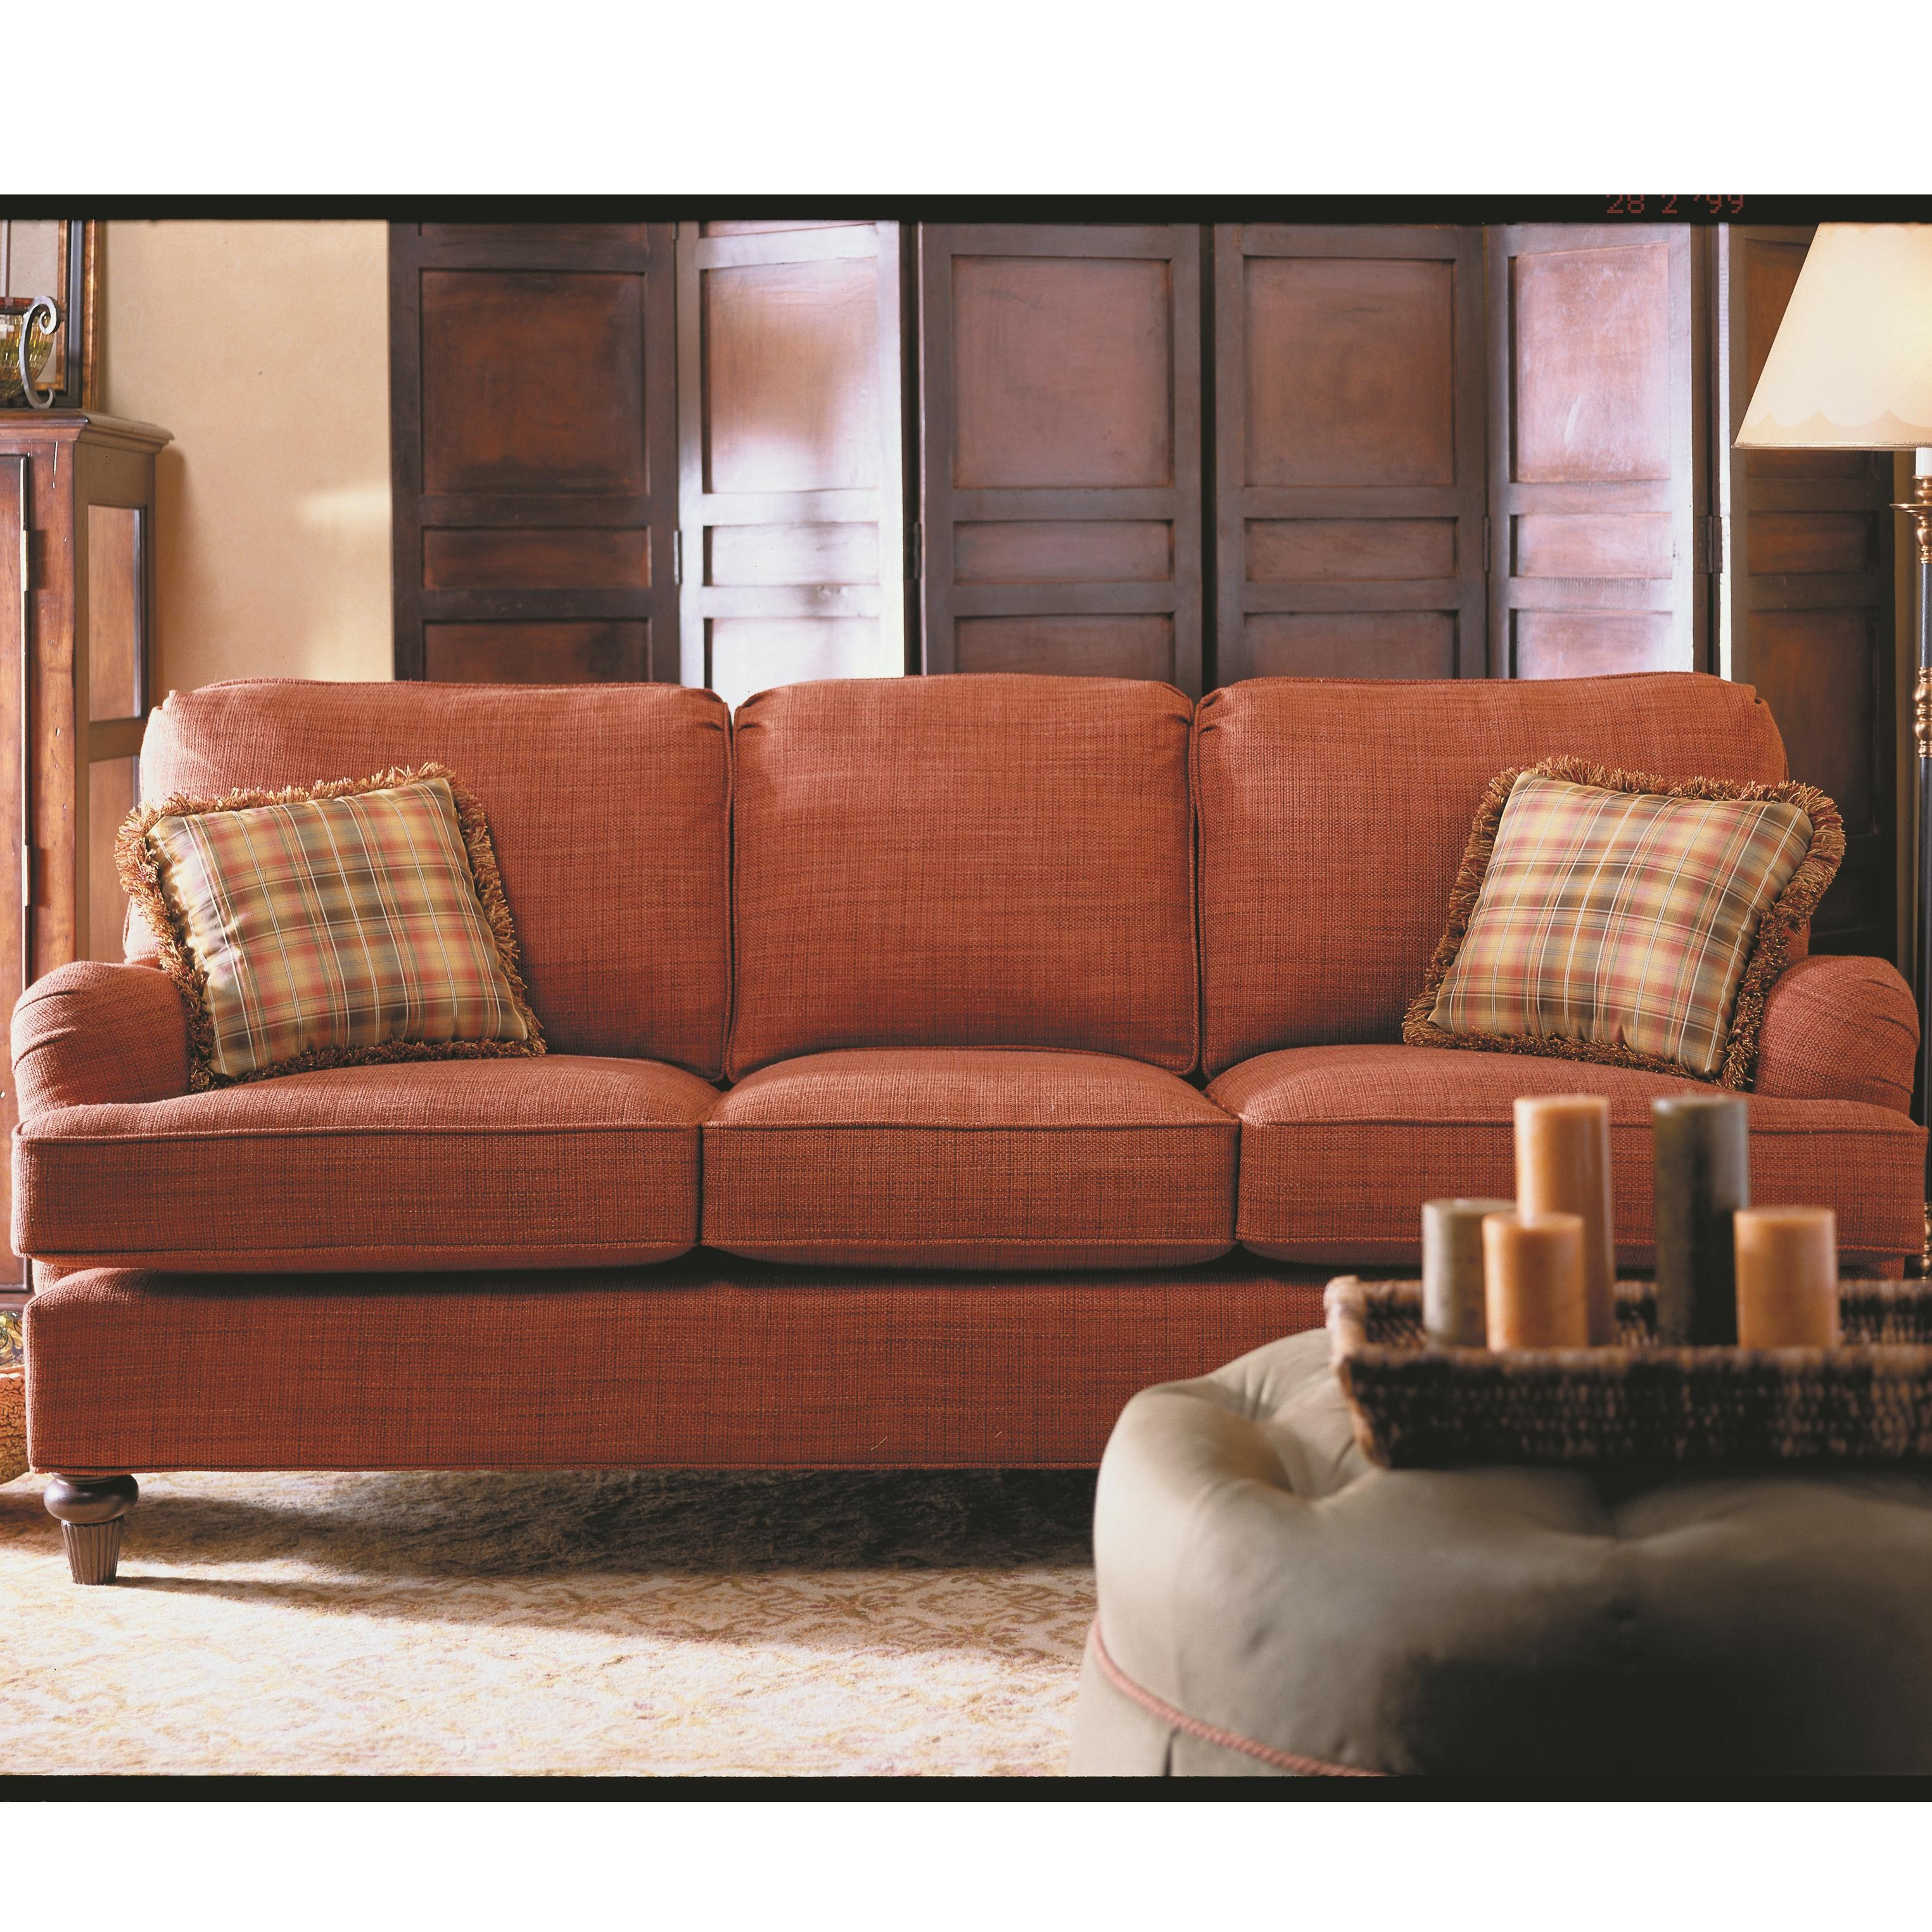 Norwalk EstateTraditional Sofa